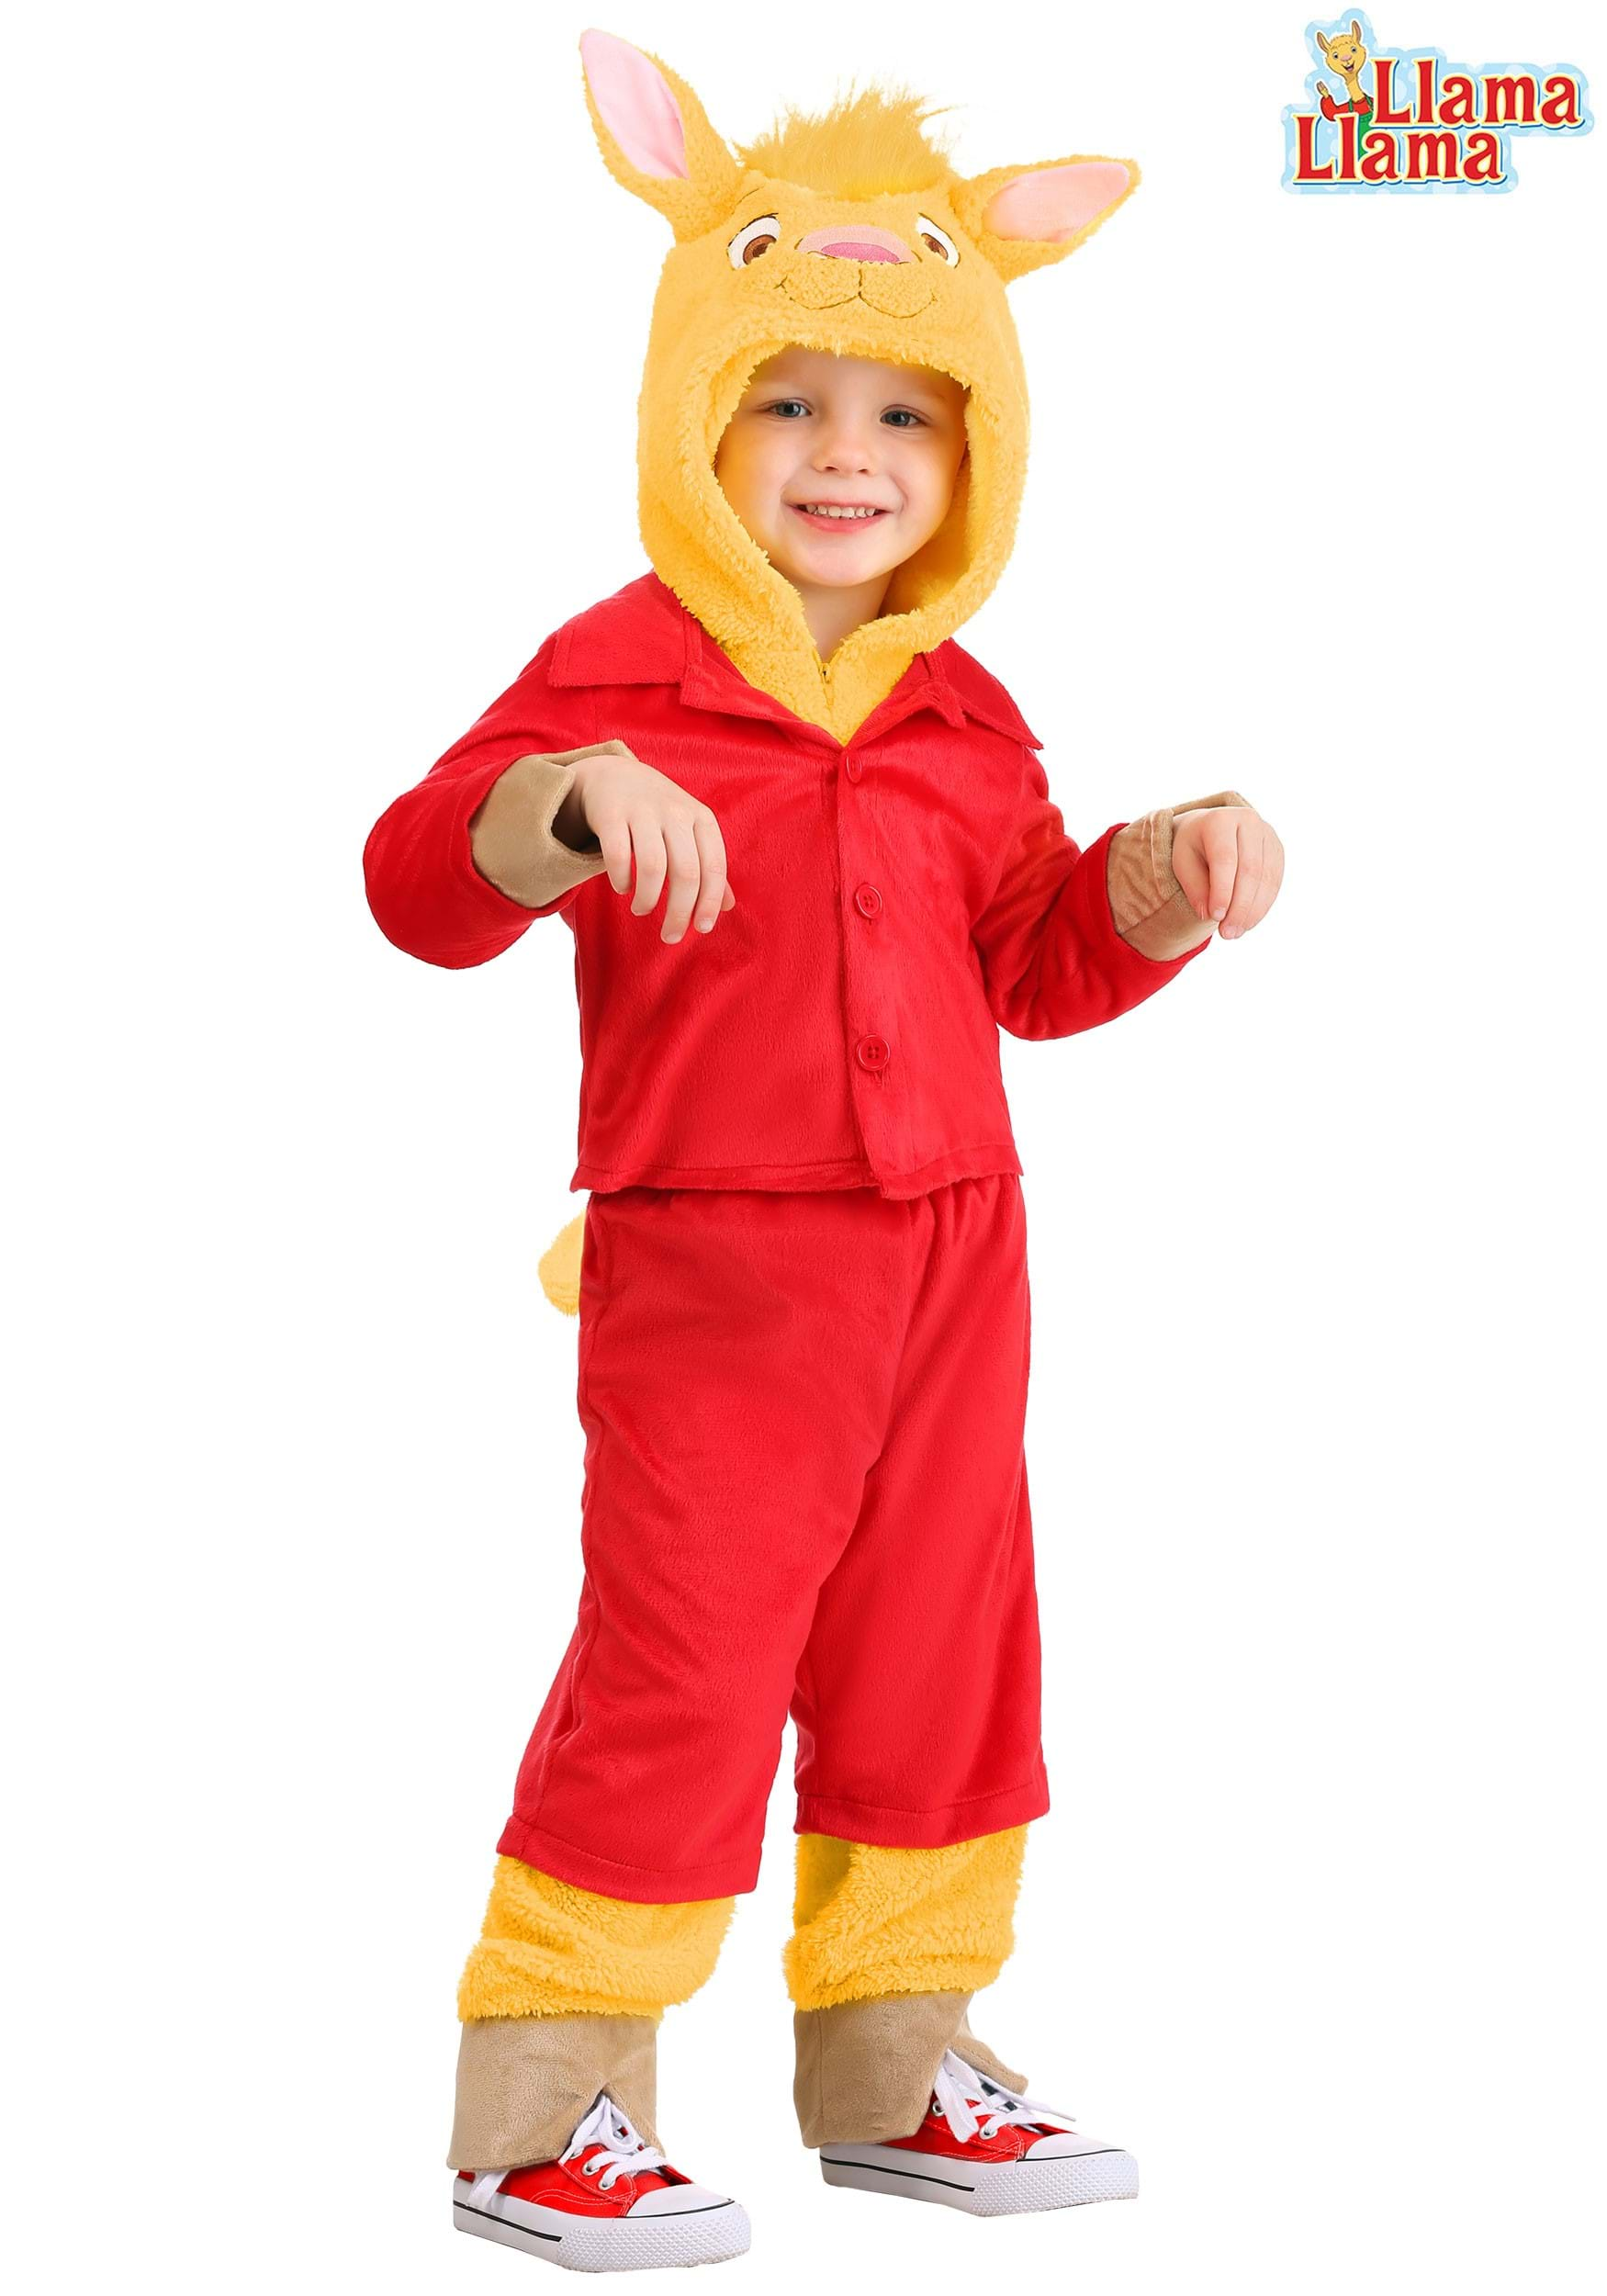 Llama Llama Red Pajama Costume For Toddlers